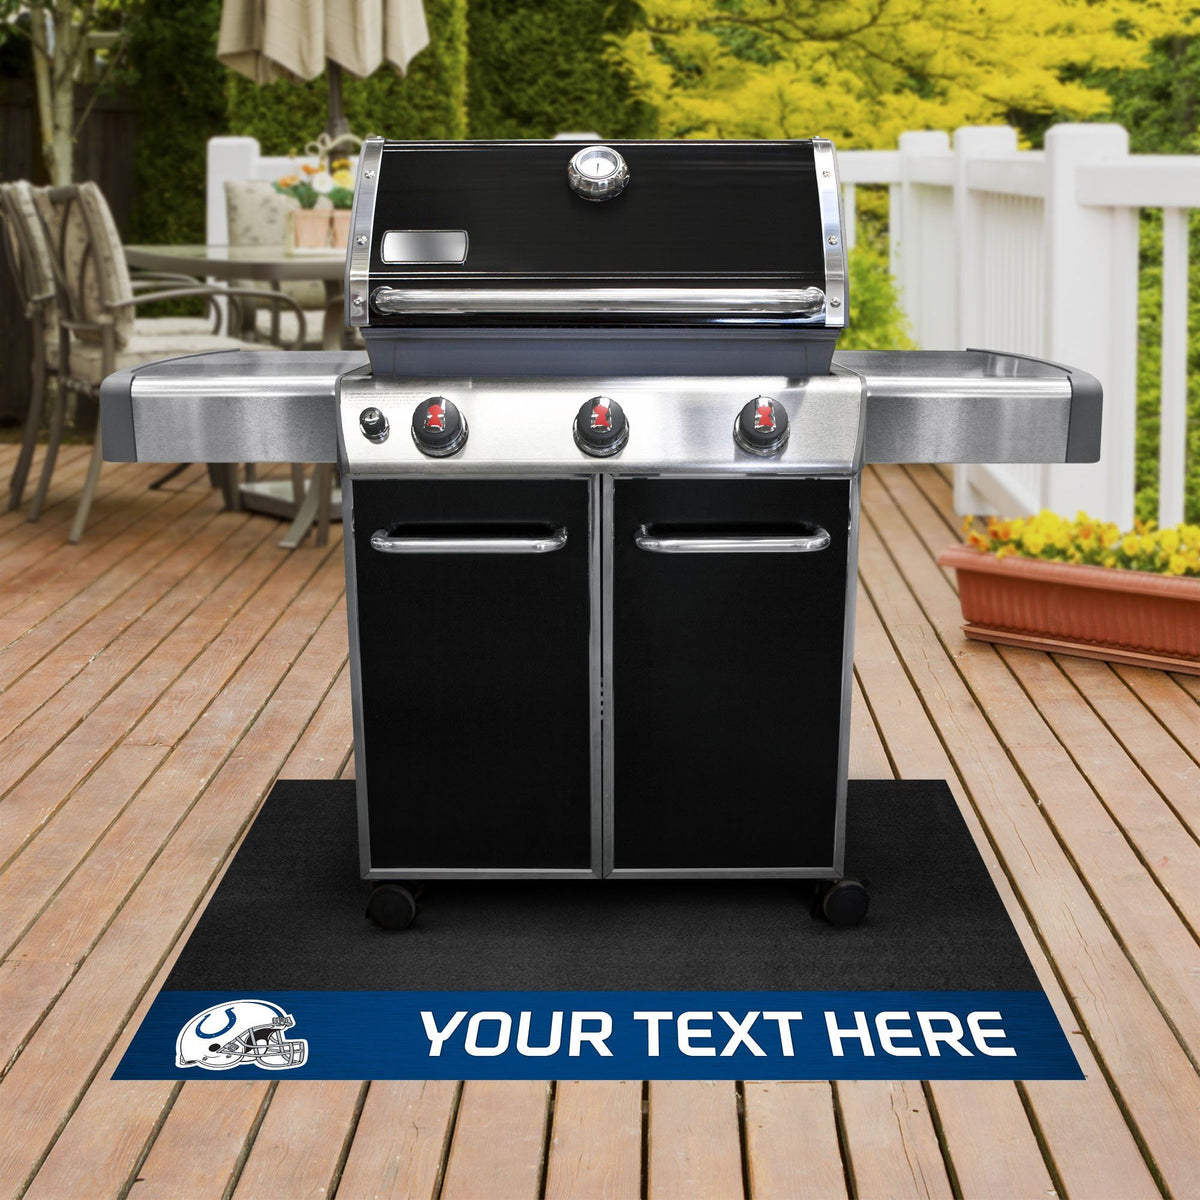 NFL Personalized Grill Mat Personalized Grill Mat Fan Mats Indianapolis Colts